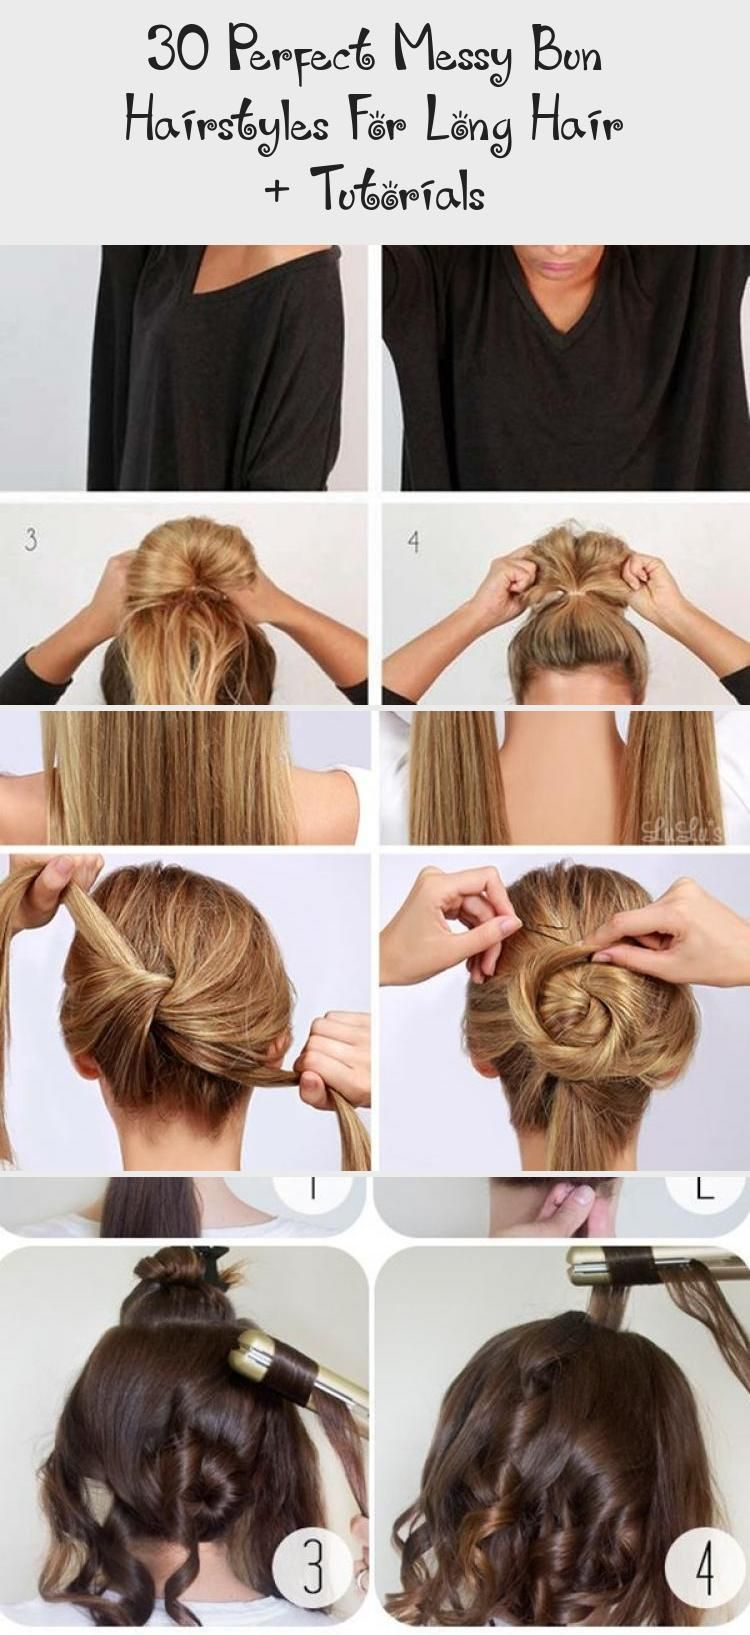 30 Perfect Messy Bun Hairstyles For Long Hair Tutorials Hair Styles 30 Perfect Mess In 2020 Messy Bun Hairstyles Bun Hairstyles For Long Hair Long Hair Tutorial